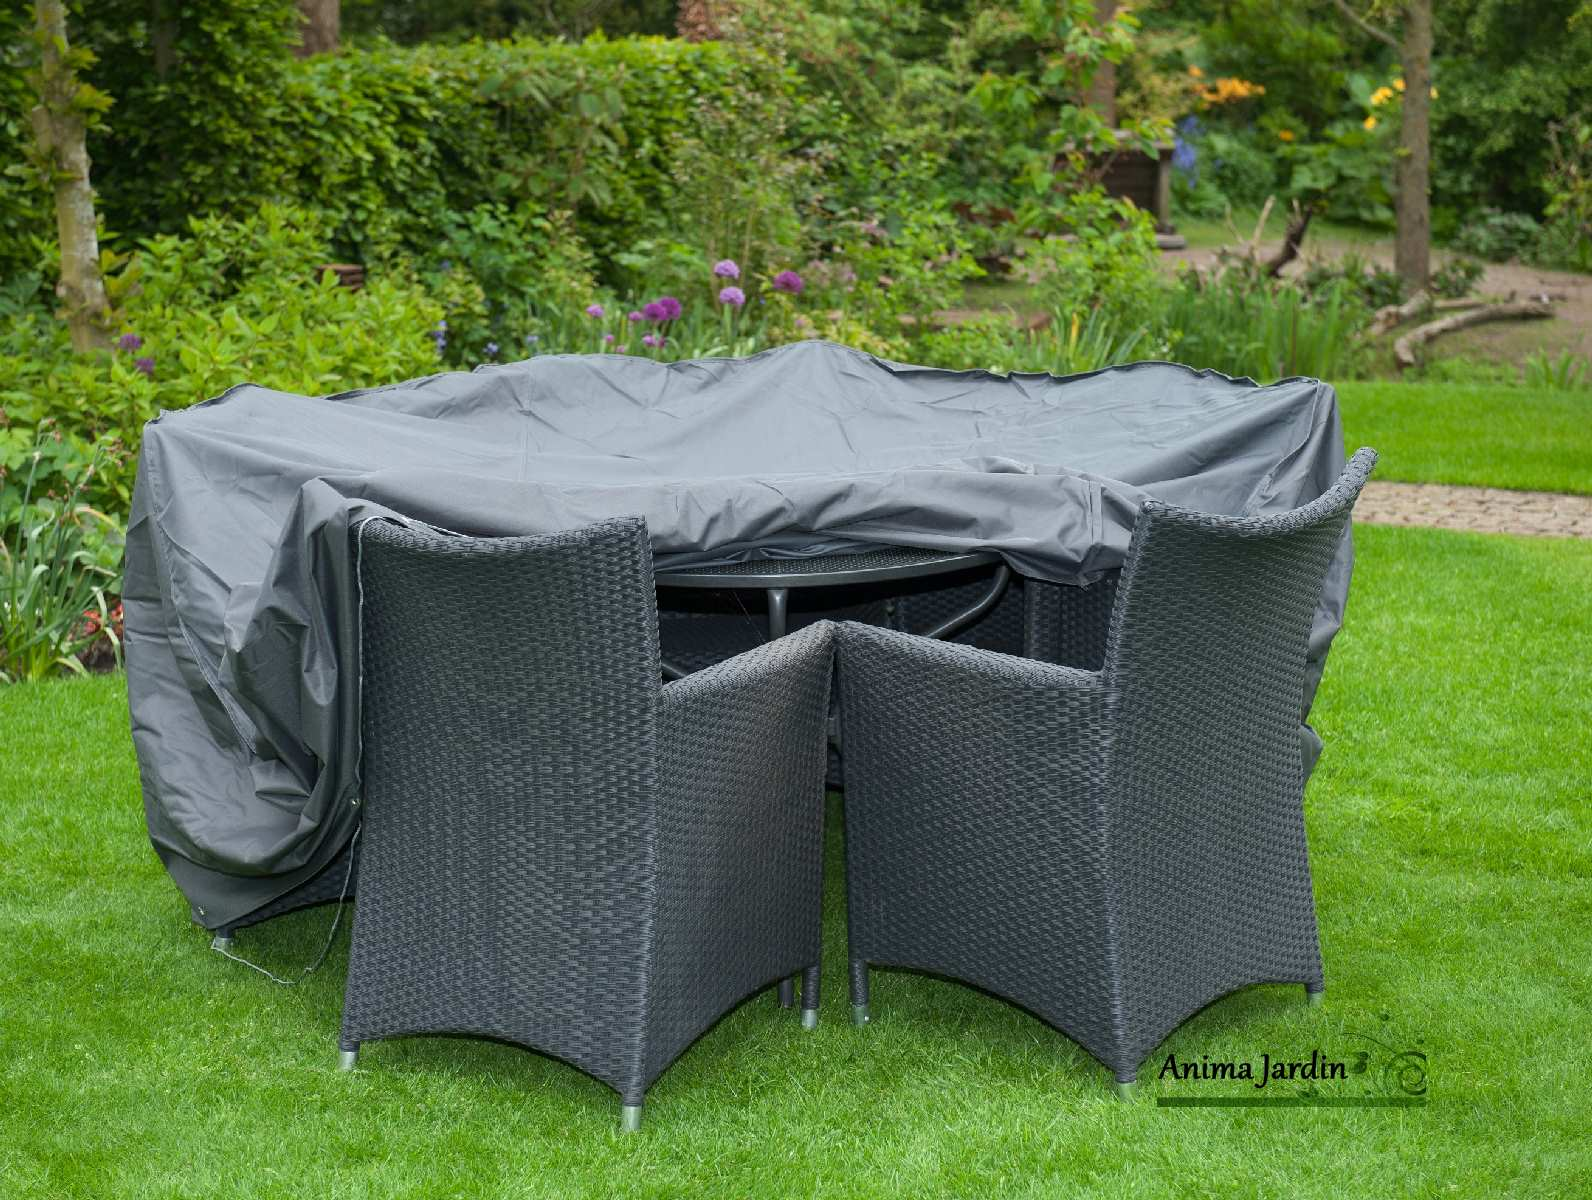 Housse de protection salon de jardin table ronde imperm able - Protection salon de jardin ...